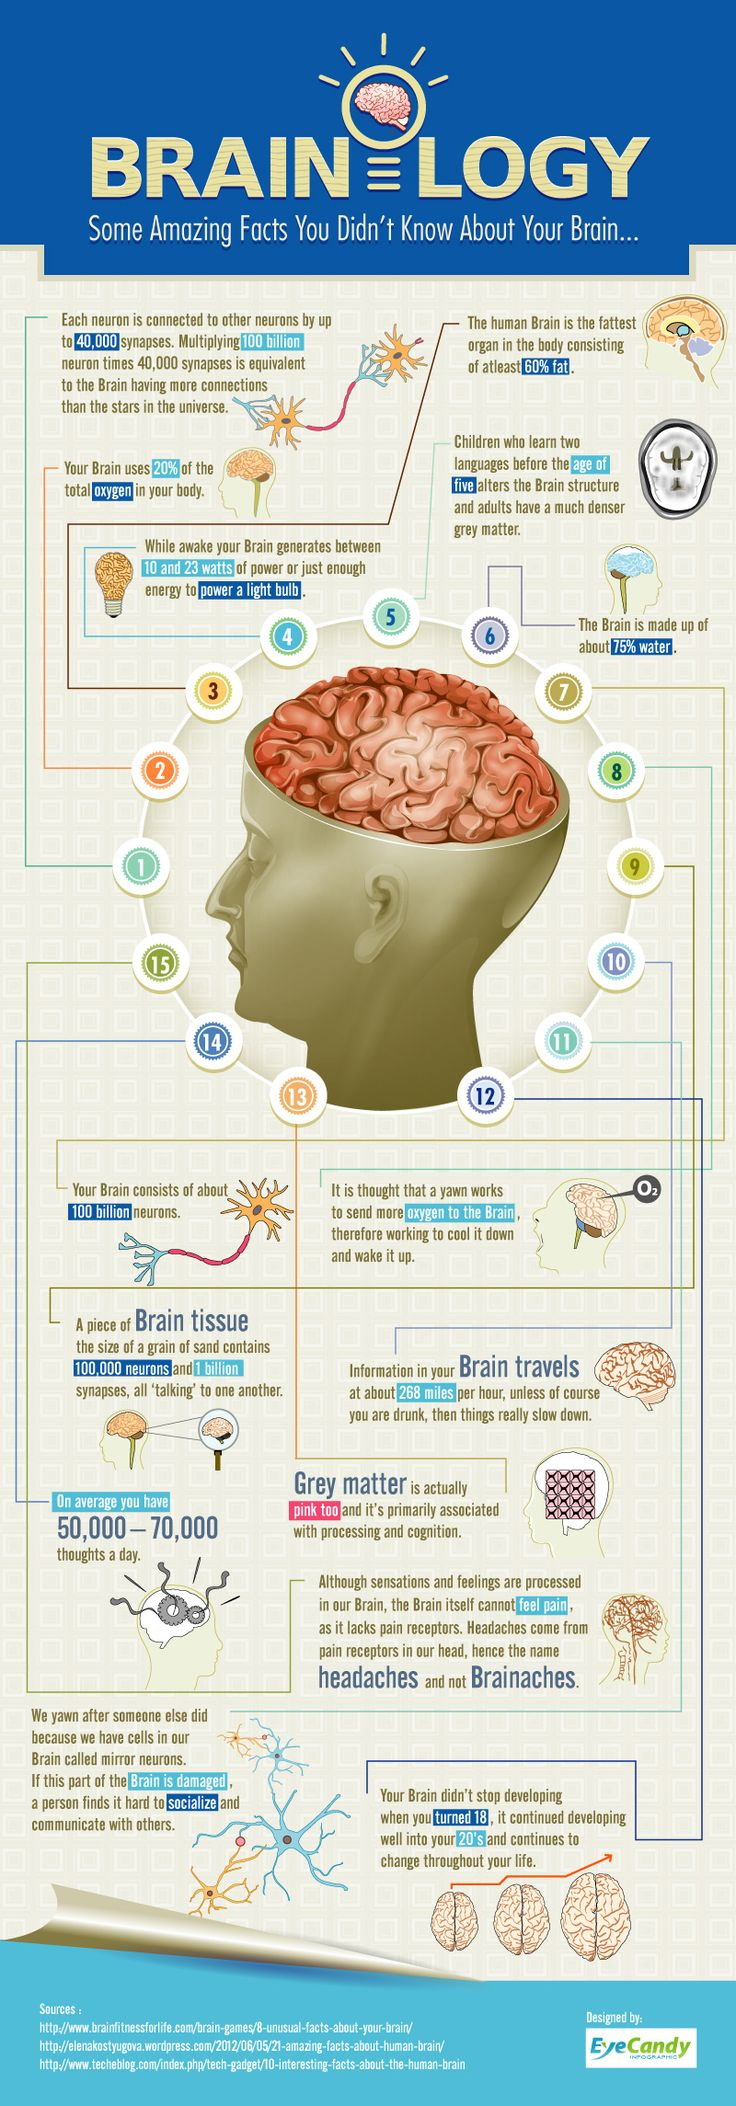 13 Interesting Facts About the Human Brain | Brainology - some interesting facts you didnt know about your brain.